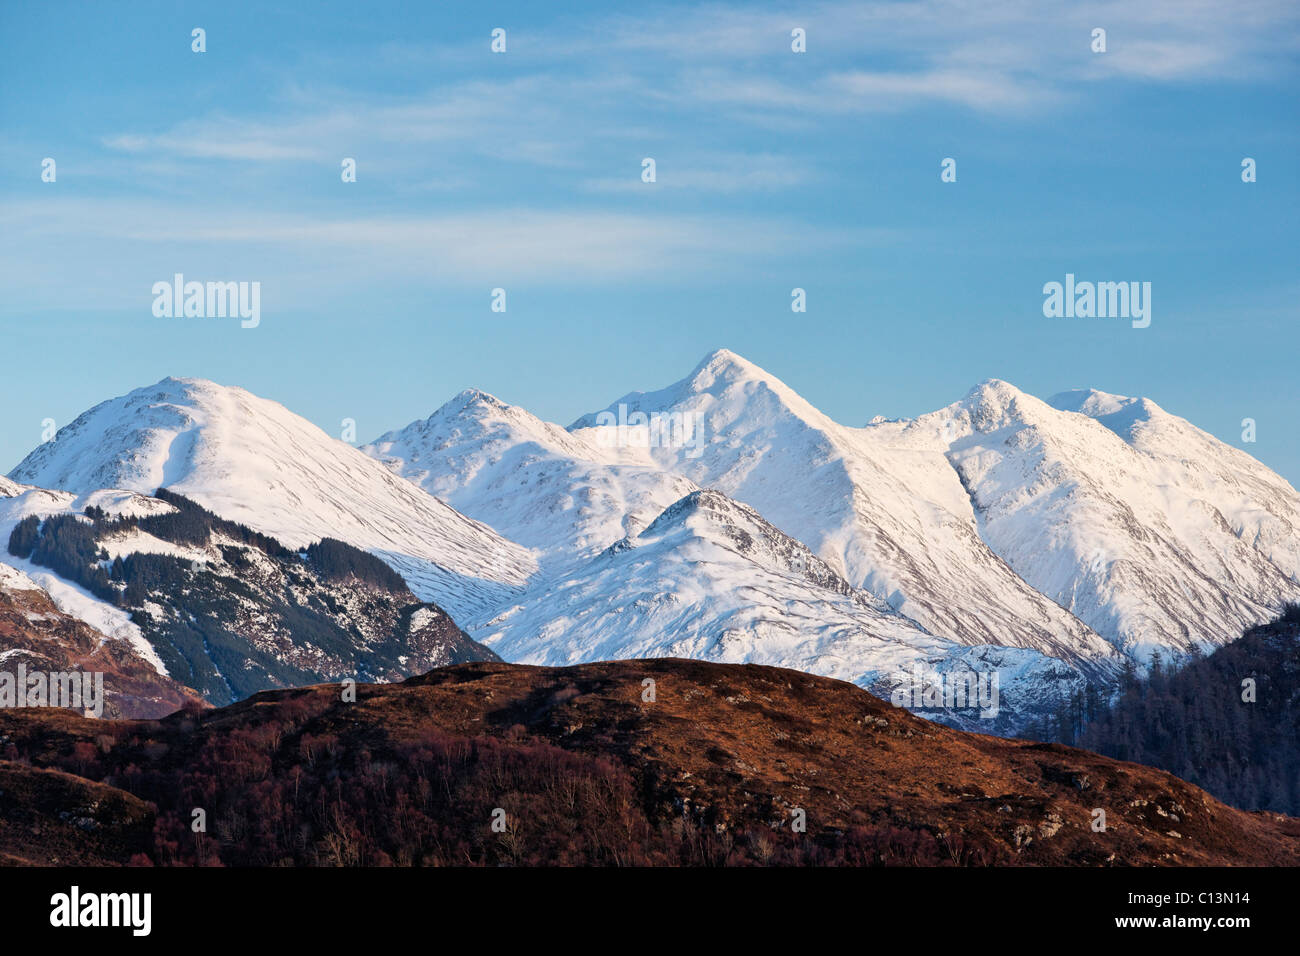 The Five Sisters of Kintail, Highland, Scotland, UK. - Stock Image